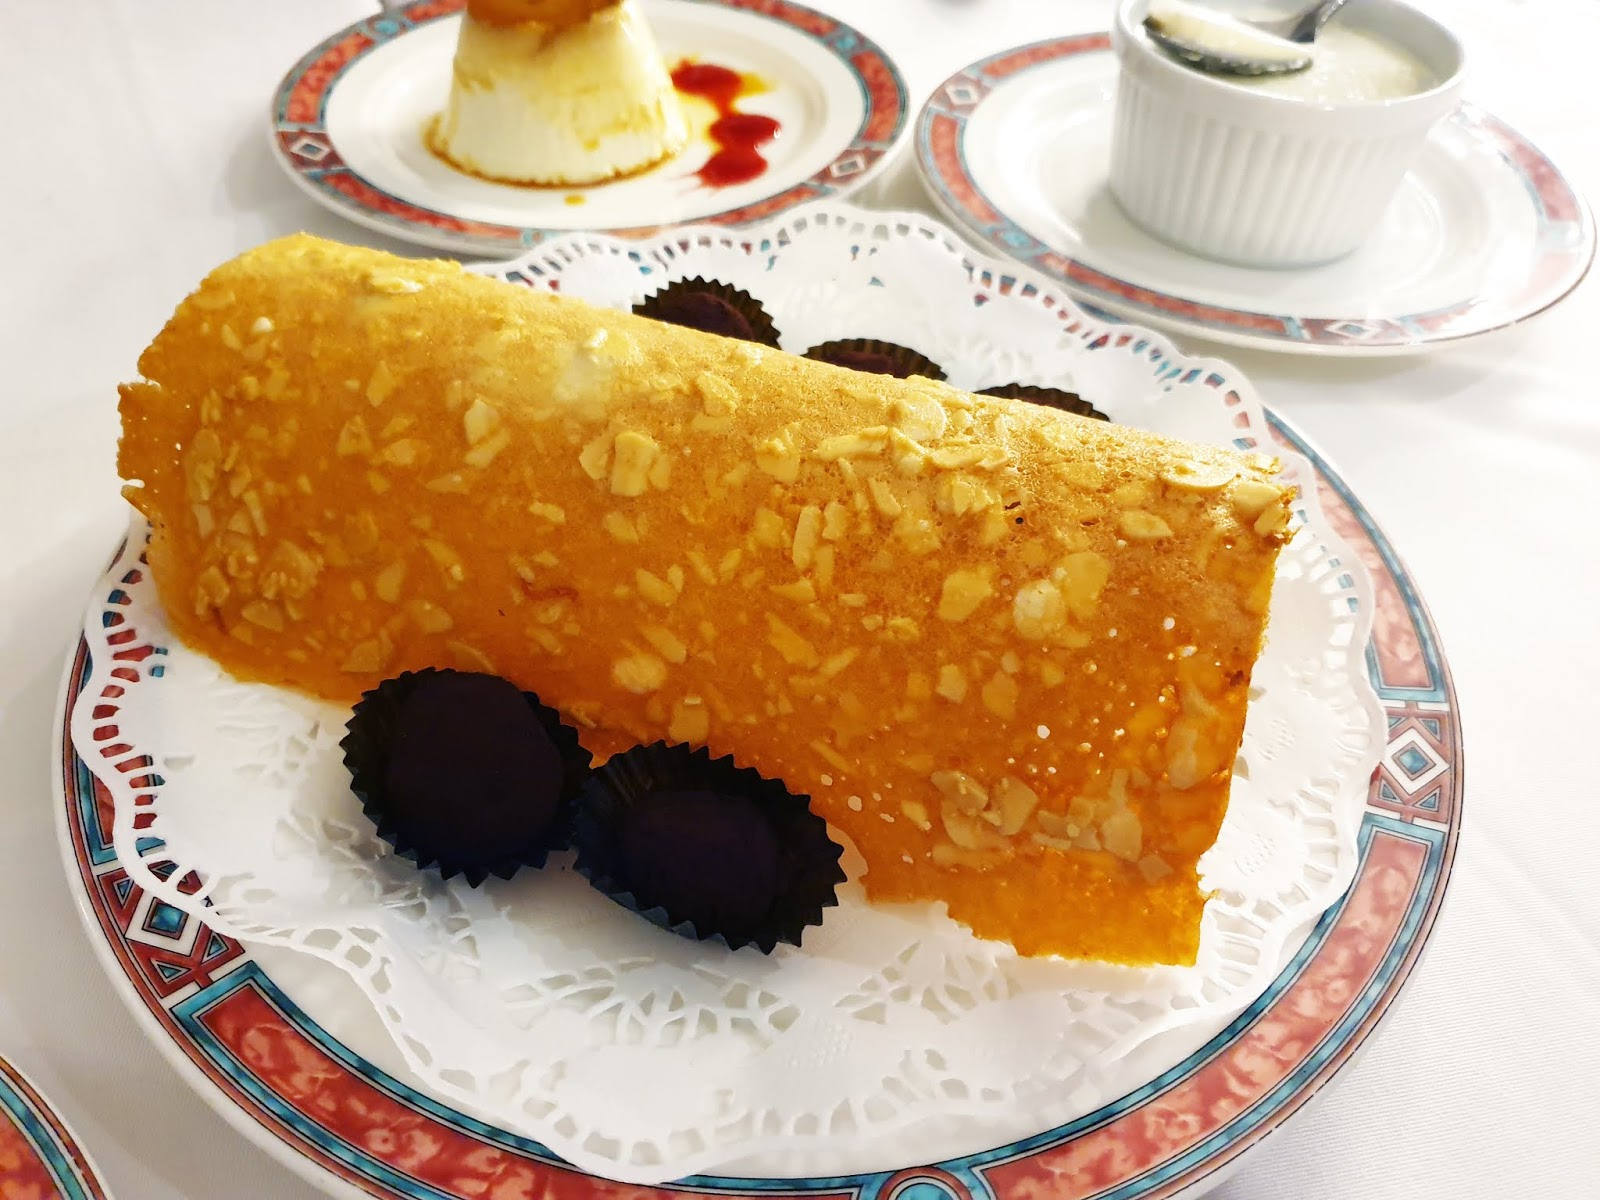 restaurante OX's Madrid postre